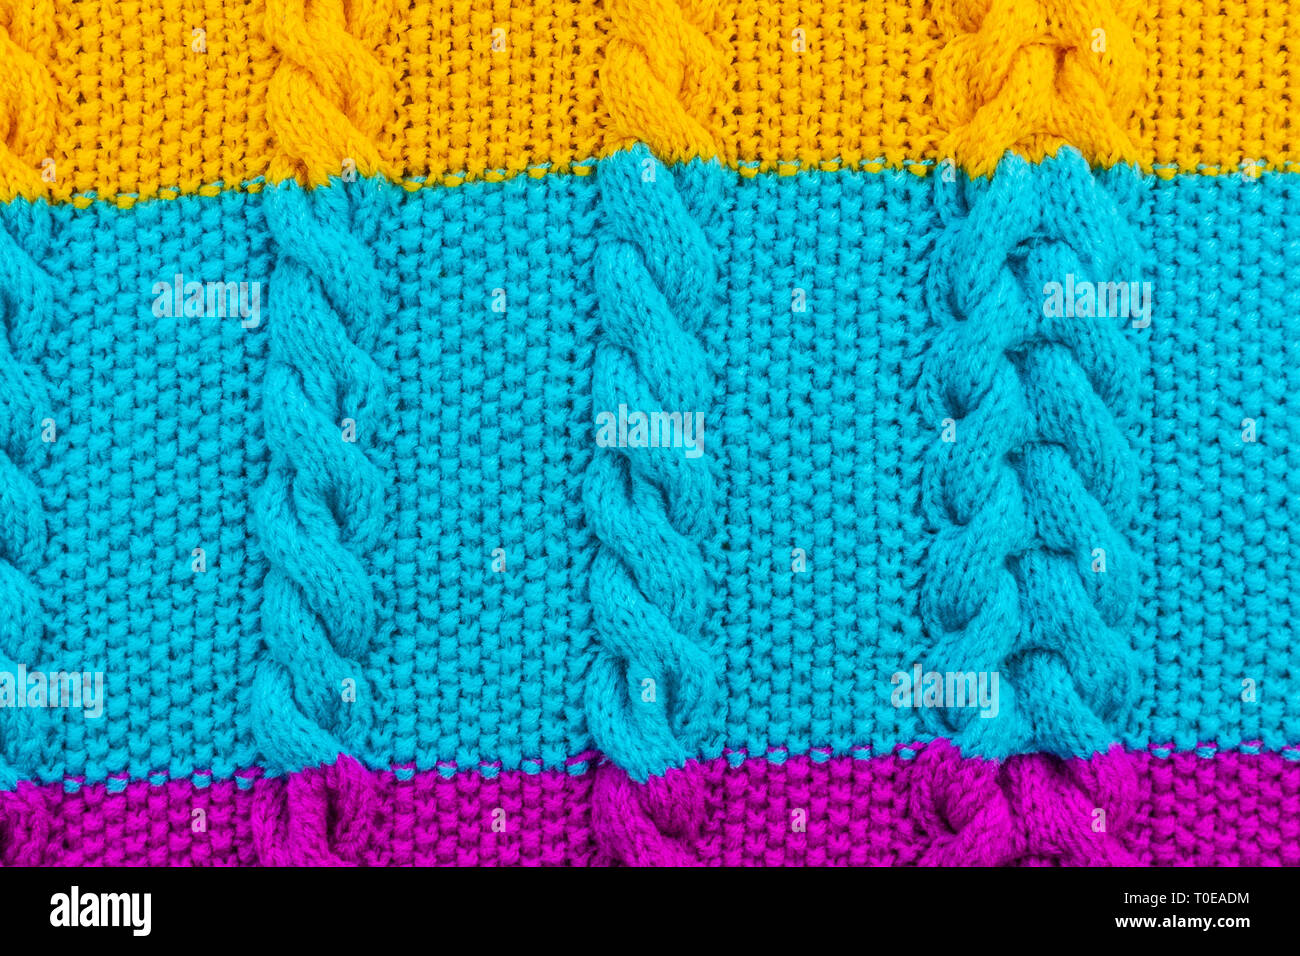 Texture Of Knitted Woolen Fabric For Wallpaper And An Abstract Background Stock Photo Alamy